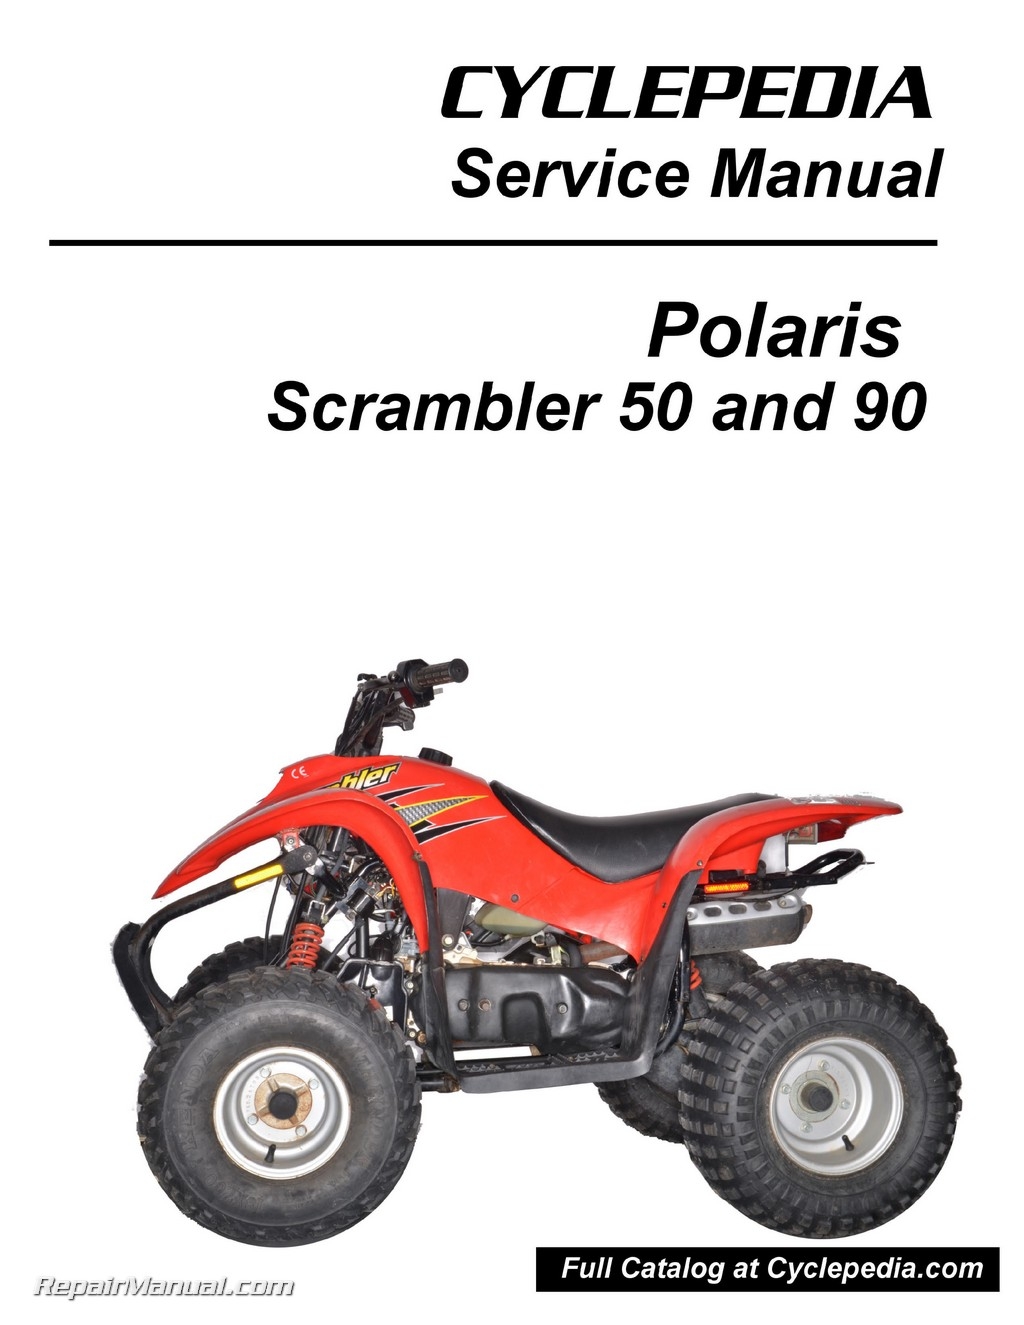 polaris 50cc 90cc scrambler atv print service manual by cyclepedia rh repairmanual com Polaris Scrambler 50 Oil Polaris Scrambler 50 Drawing